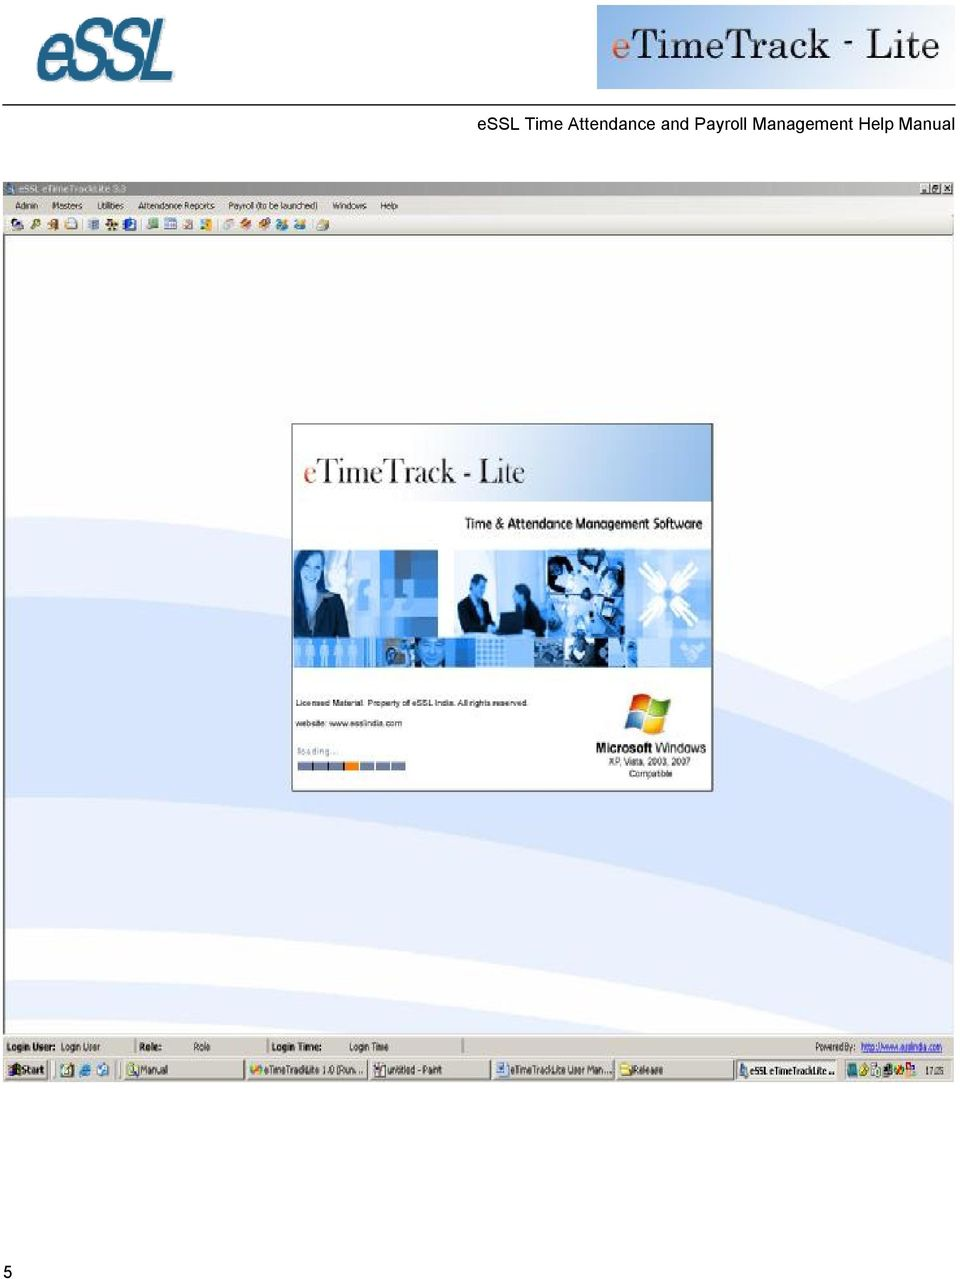 essl Time Attendance and Payroll Management Help Manual Help Manual